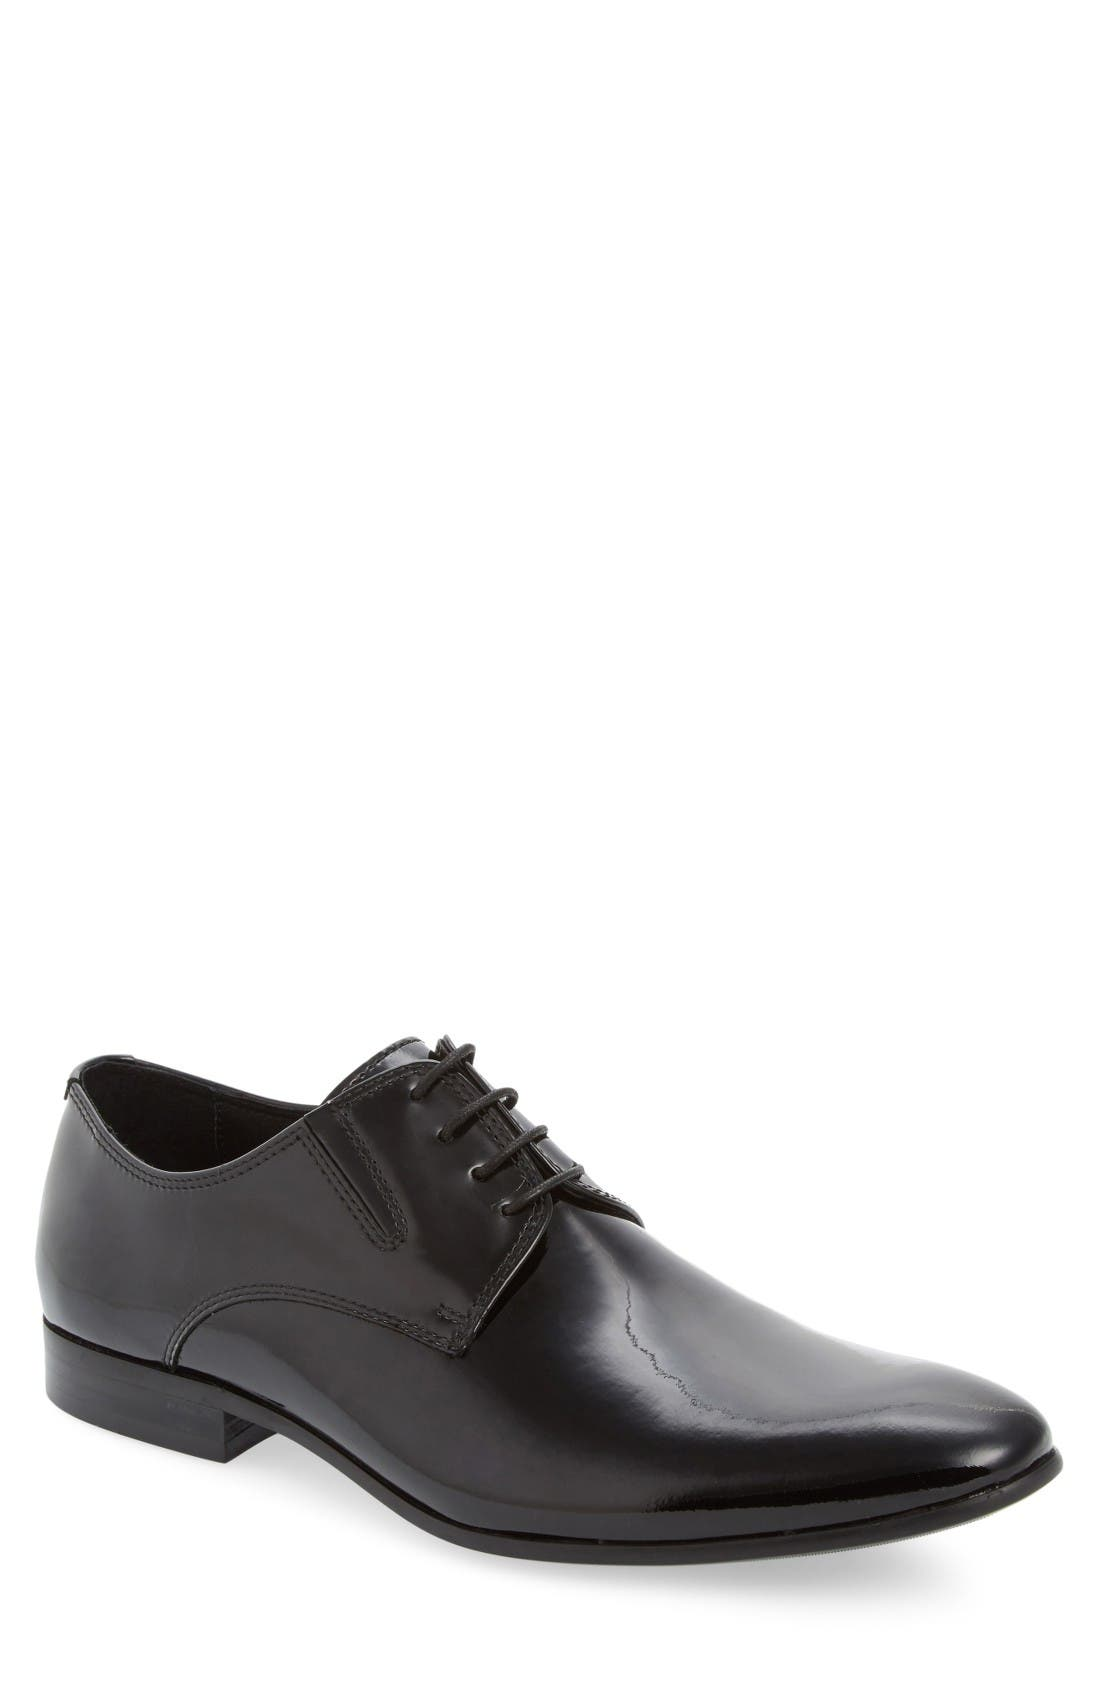 Alternate Image 1 Selected - Kenneth Cole New York 'Mix-Er' Plain Toe Derby (Men)